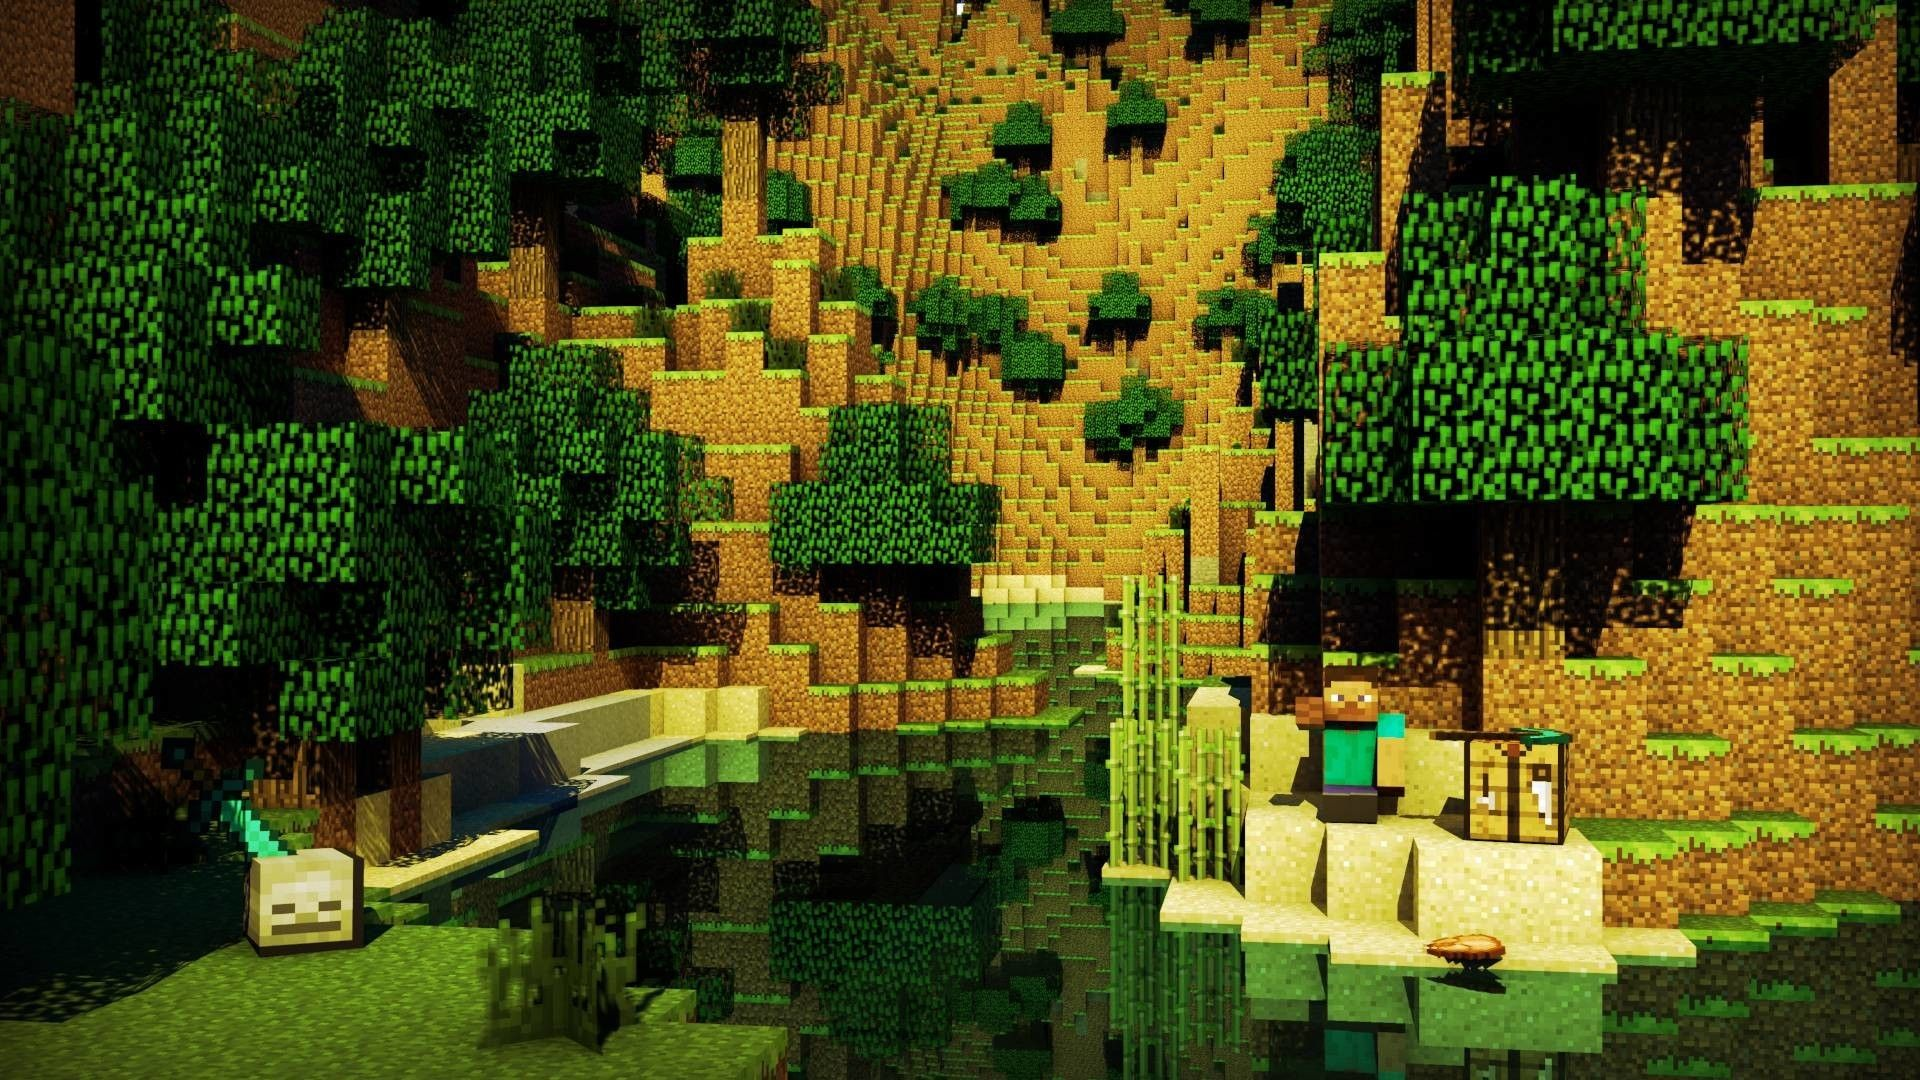 1920x1080 75+ Minecraft Background Wallpapers on WallpaperPlay